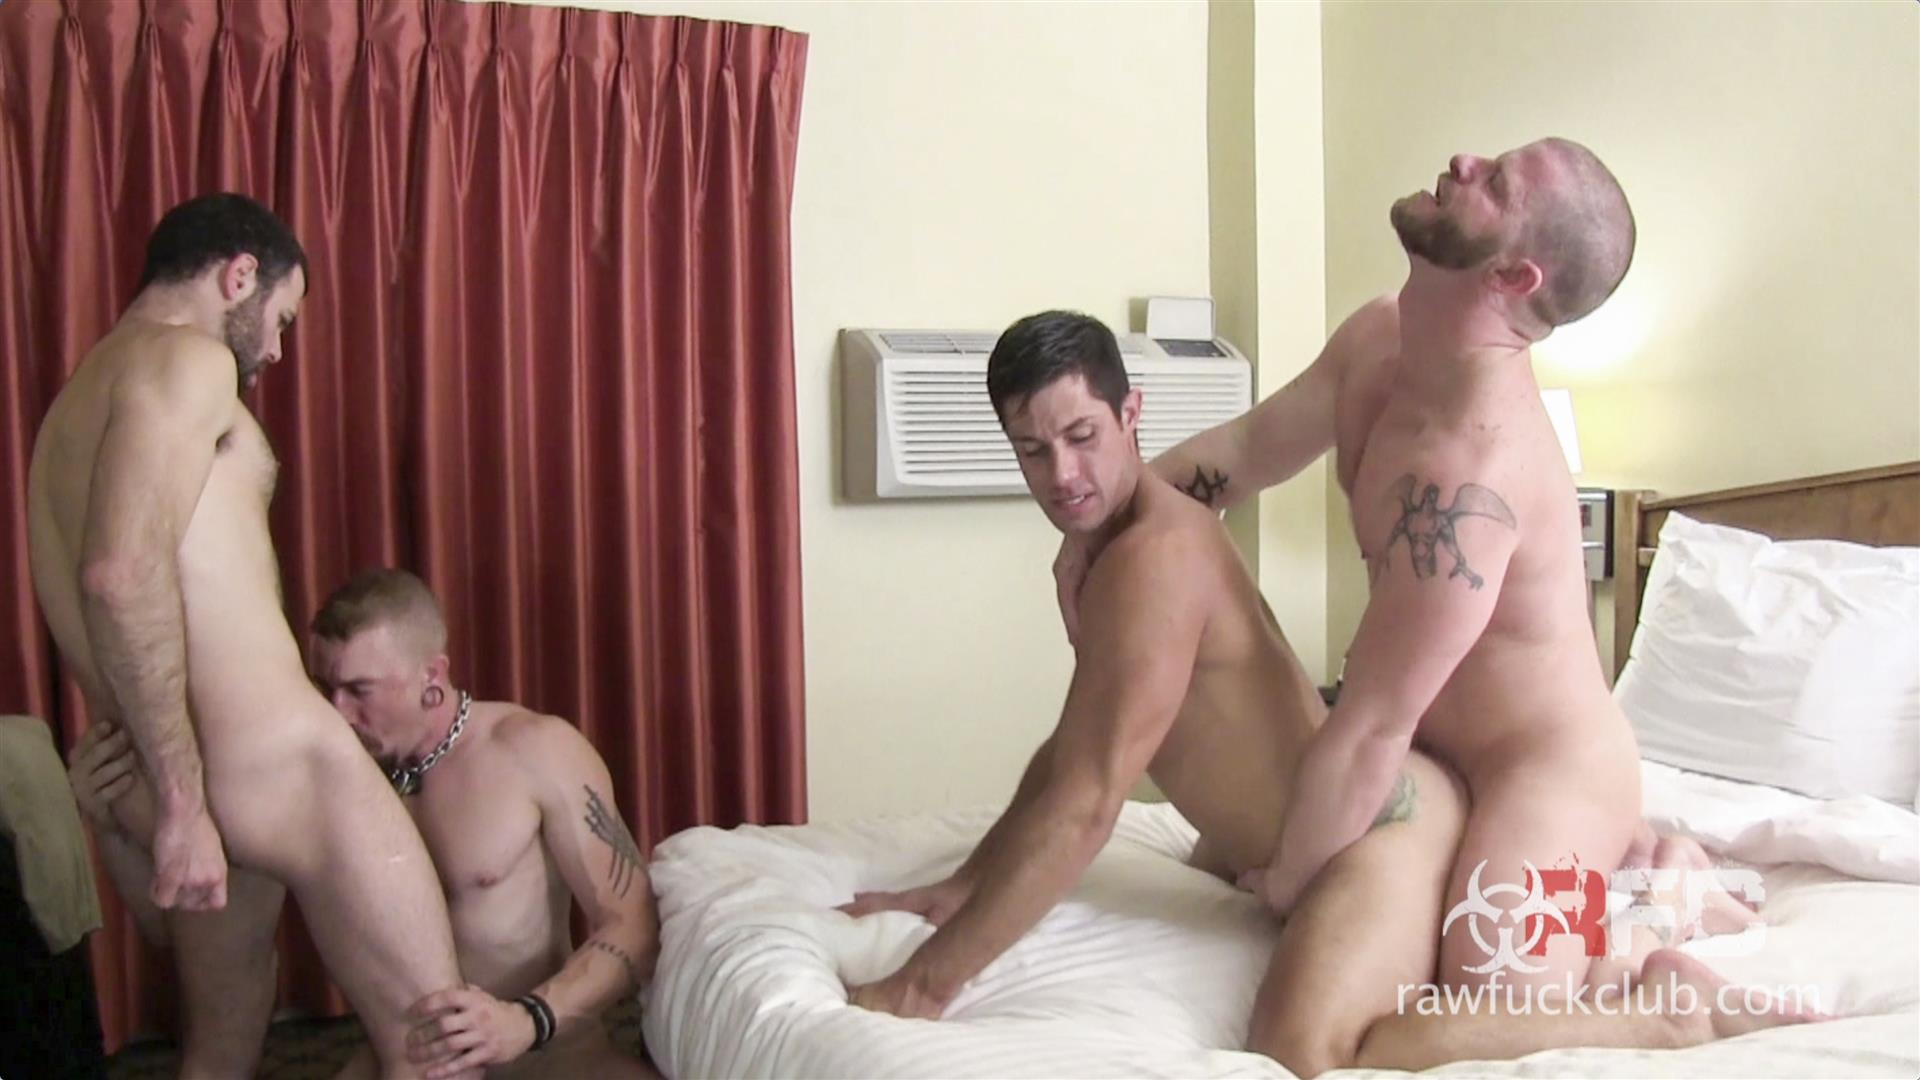 Raw-Fuck-Club-Dylan-Saunders-and-Dusty-Williams-and-Jeff-Kendall-and-Jeremy-Stevens-BBBH-Amateur-Gay-Porn-02 Big Cock Amateur Hotel Bareback Sex Party